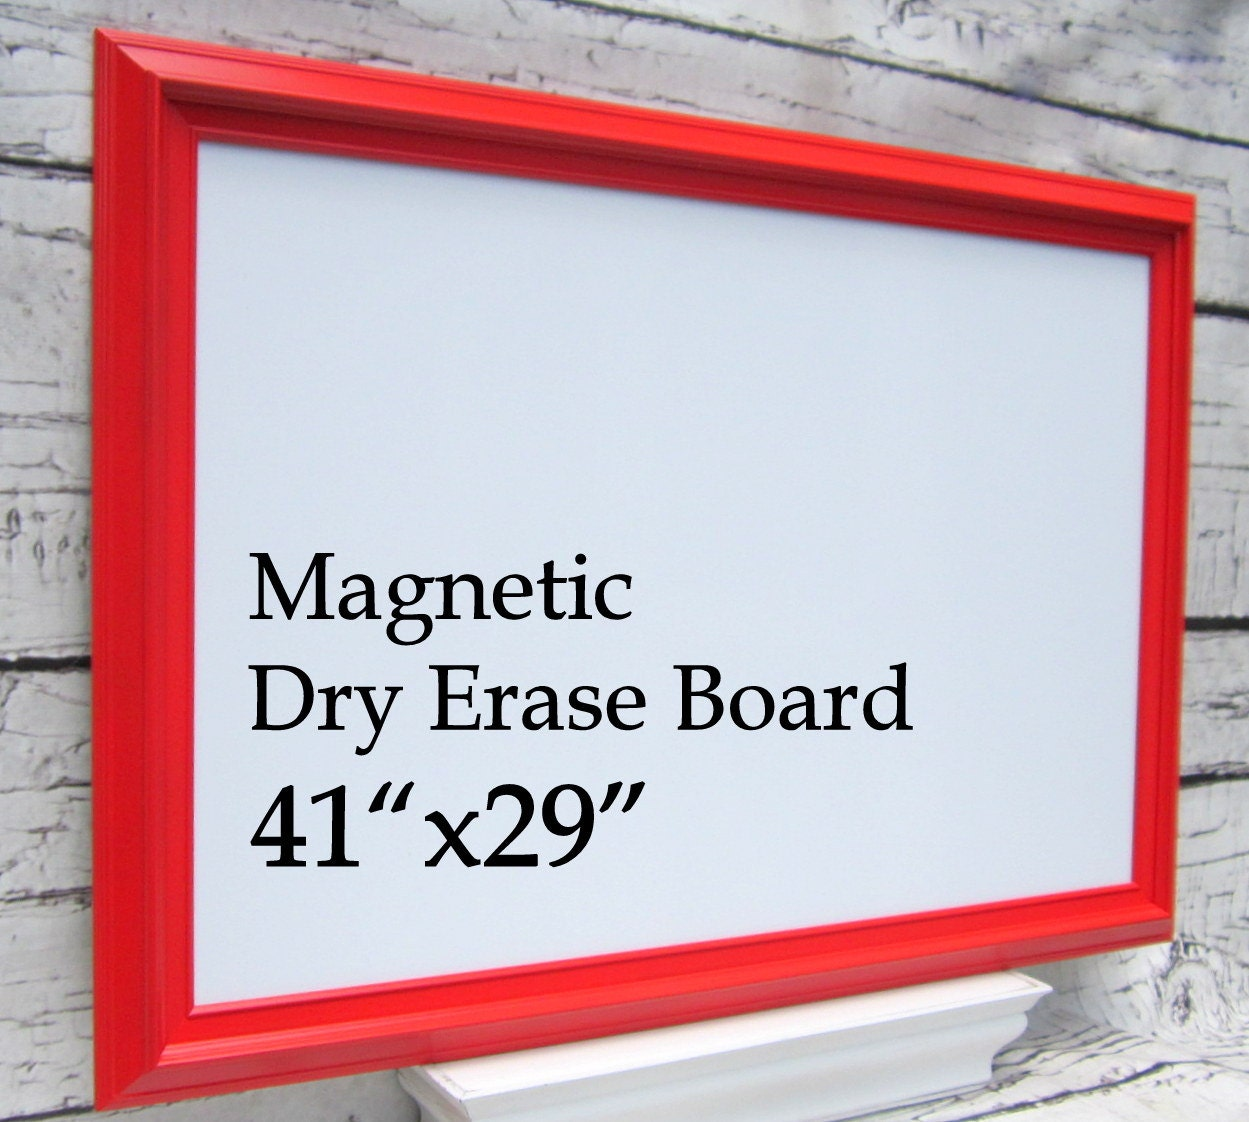 Magnetic craft board - Magnetic Dry Erase Board For Sale Kids Playroom Decor Organization Board 41 X29 Red